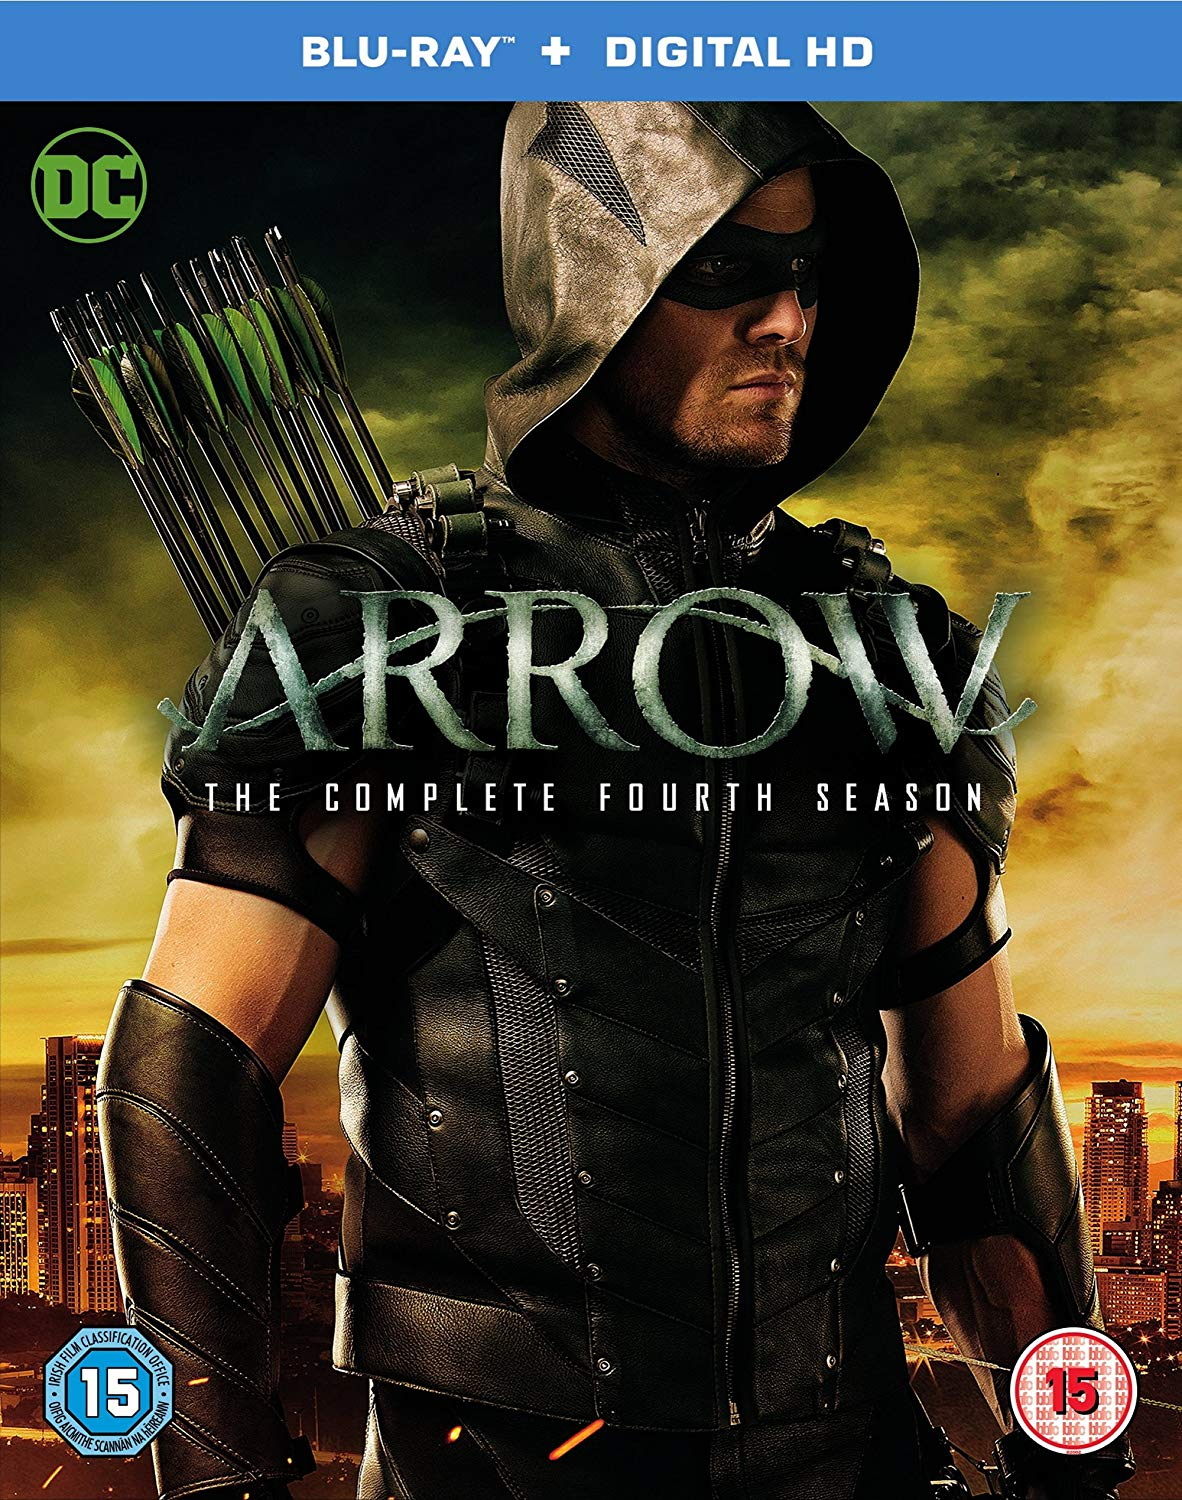 Arrow - The Complete Fourth Season region B cover.png